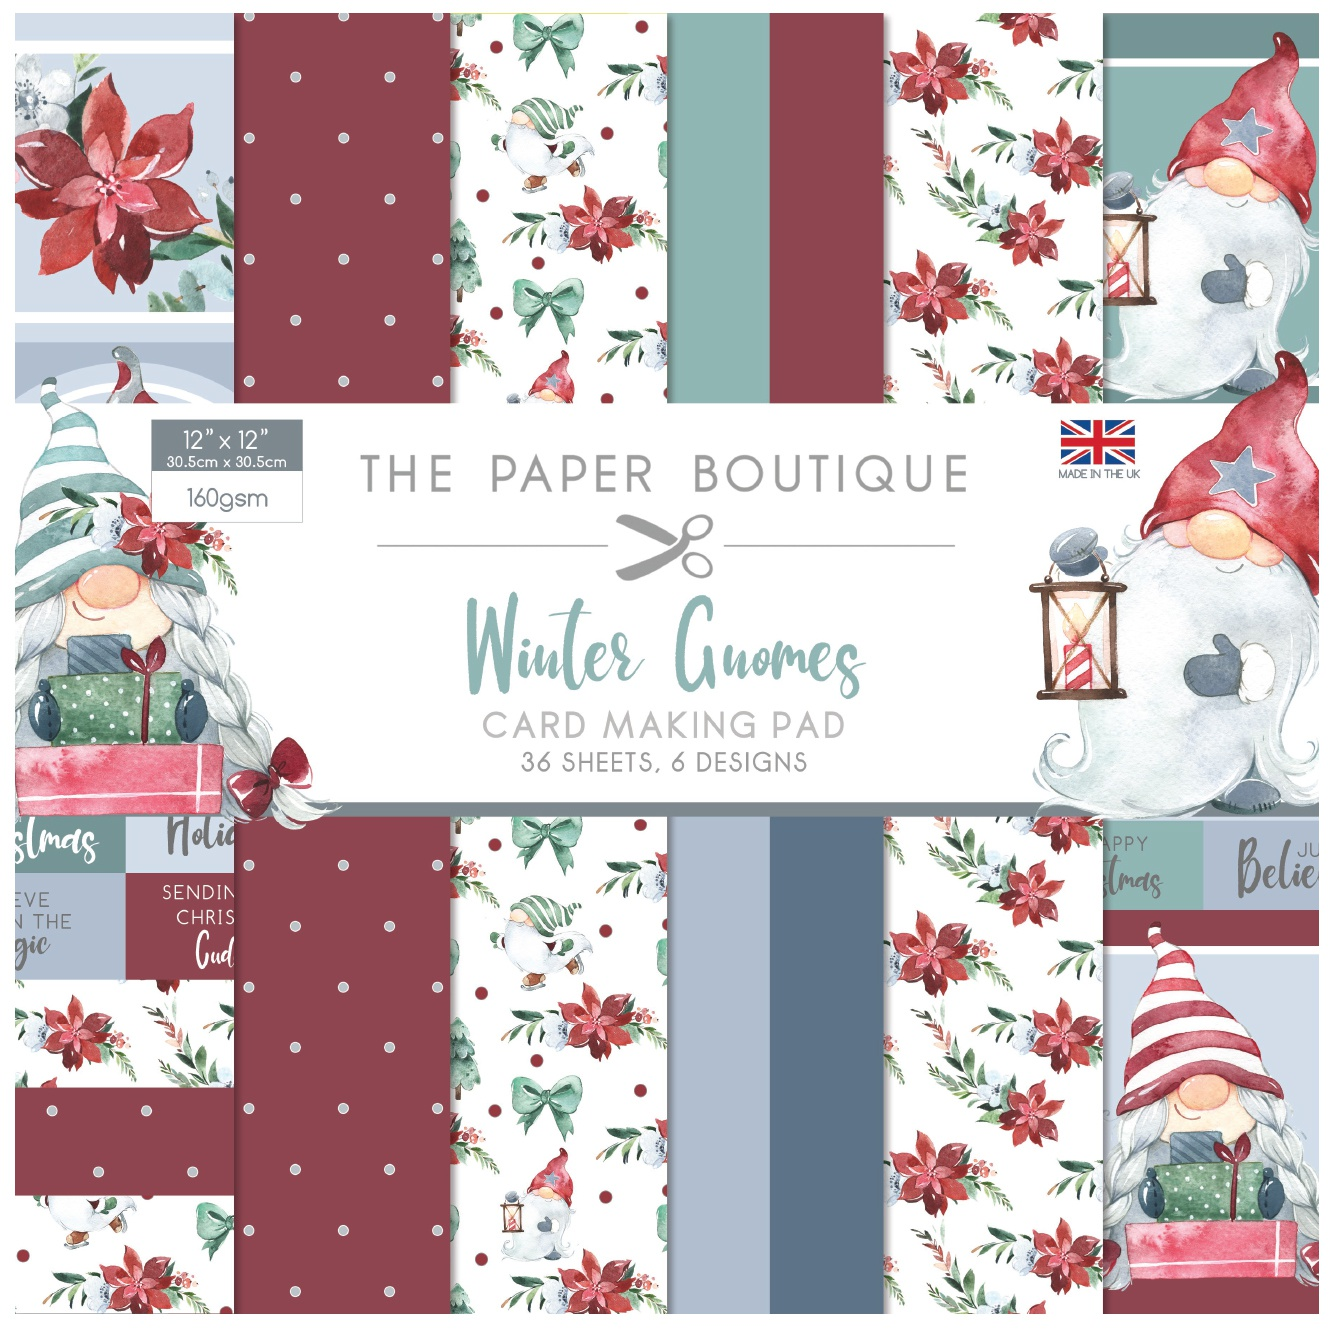 The Paper Boutique Card Making Pad 12X12 36/Pkg-Winter Gnomes, 6 Designs